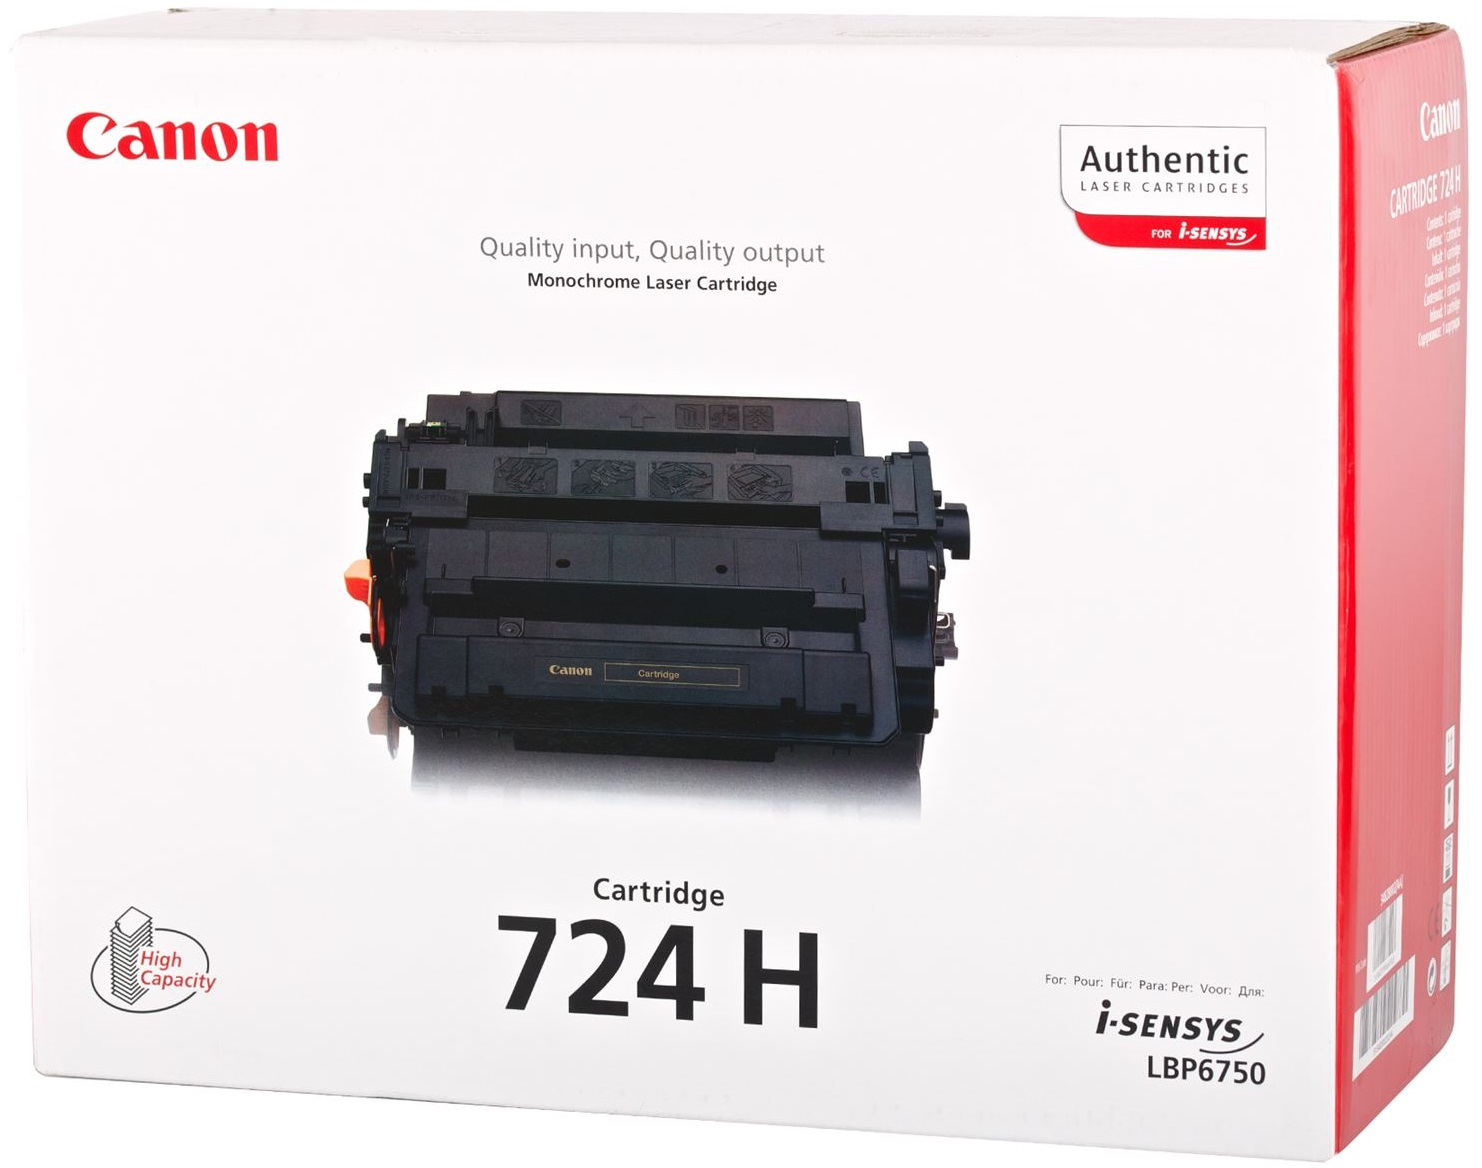 Canon LBP6750DN All-in-One Cartridge 724H